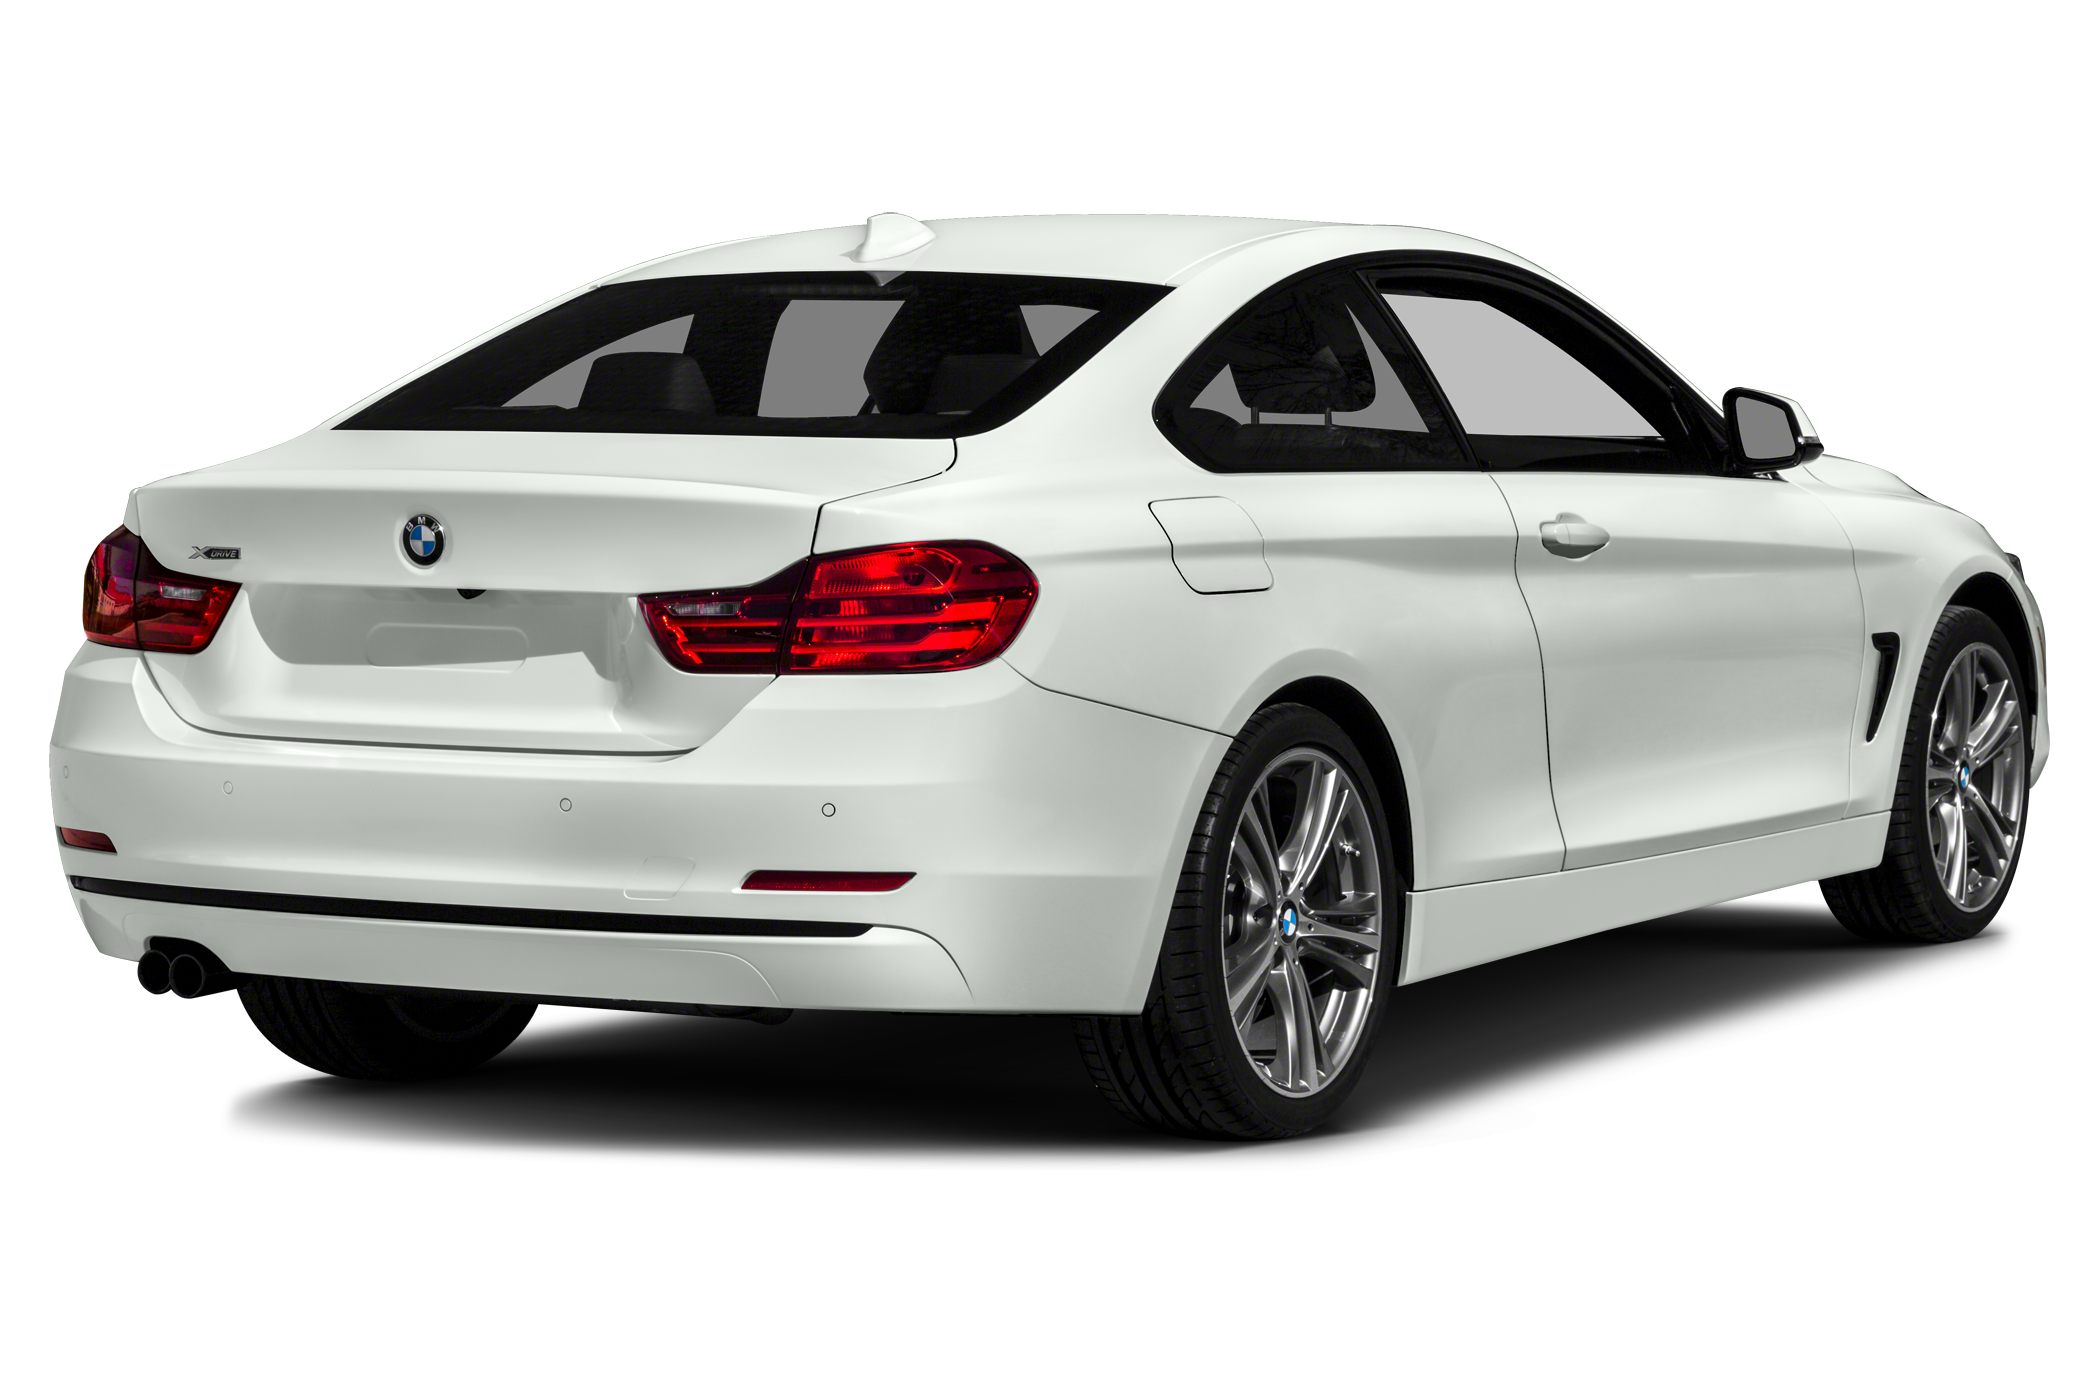 2015 BMW 4 Series 428i xDrive Vehicle Options 4WDAWD Front Side Airbag Separate DriverFront Pass